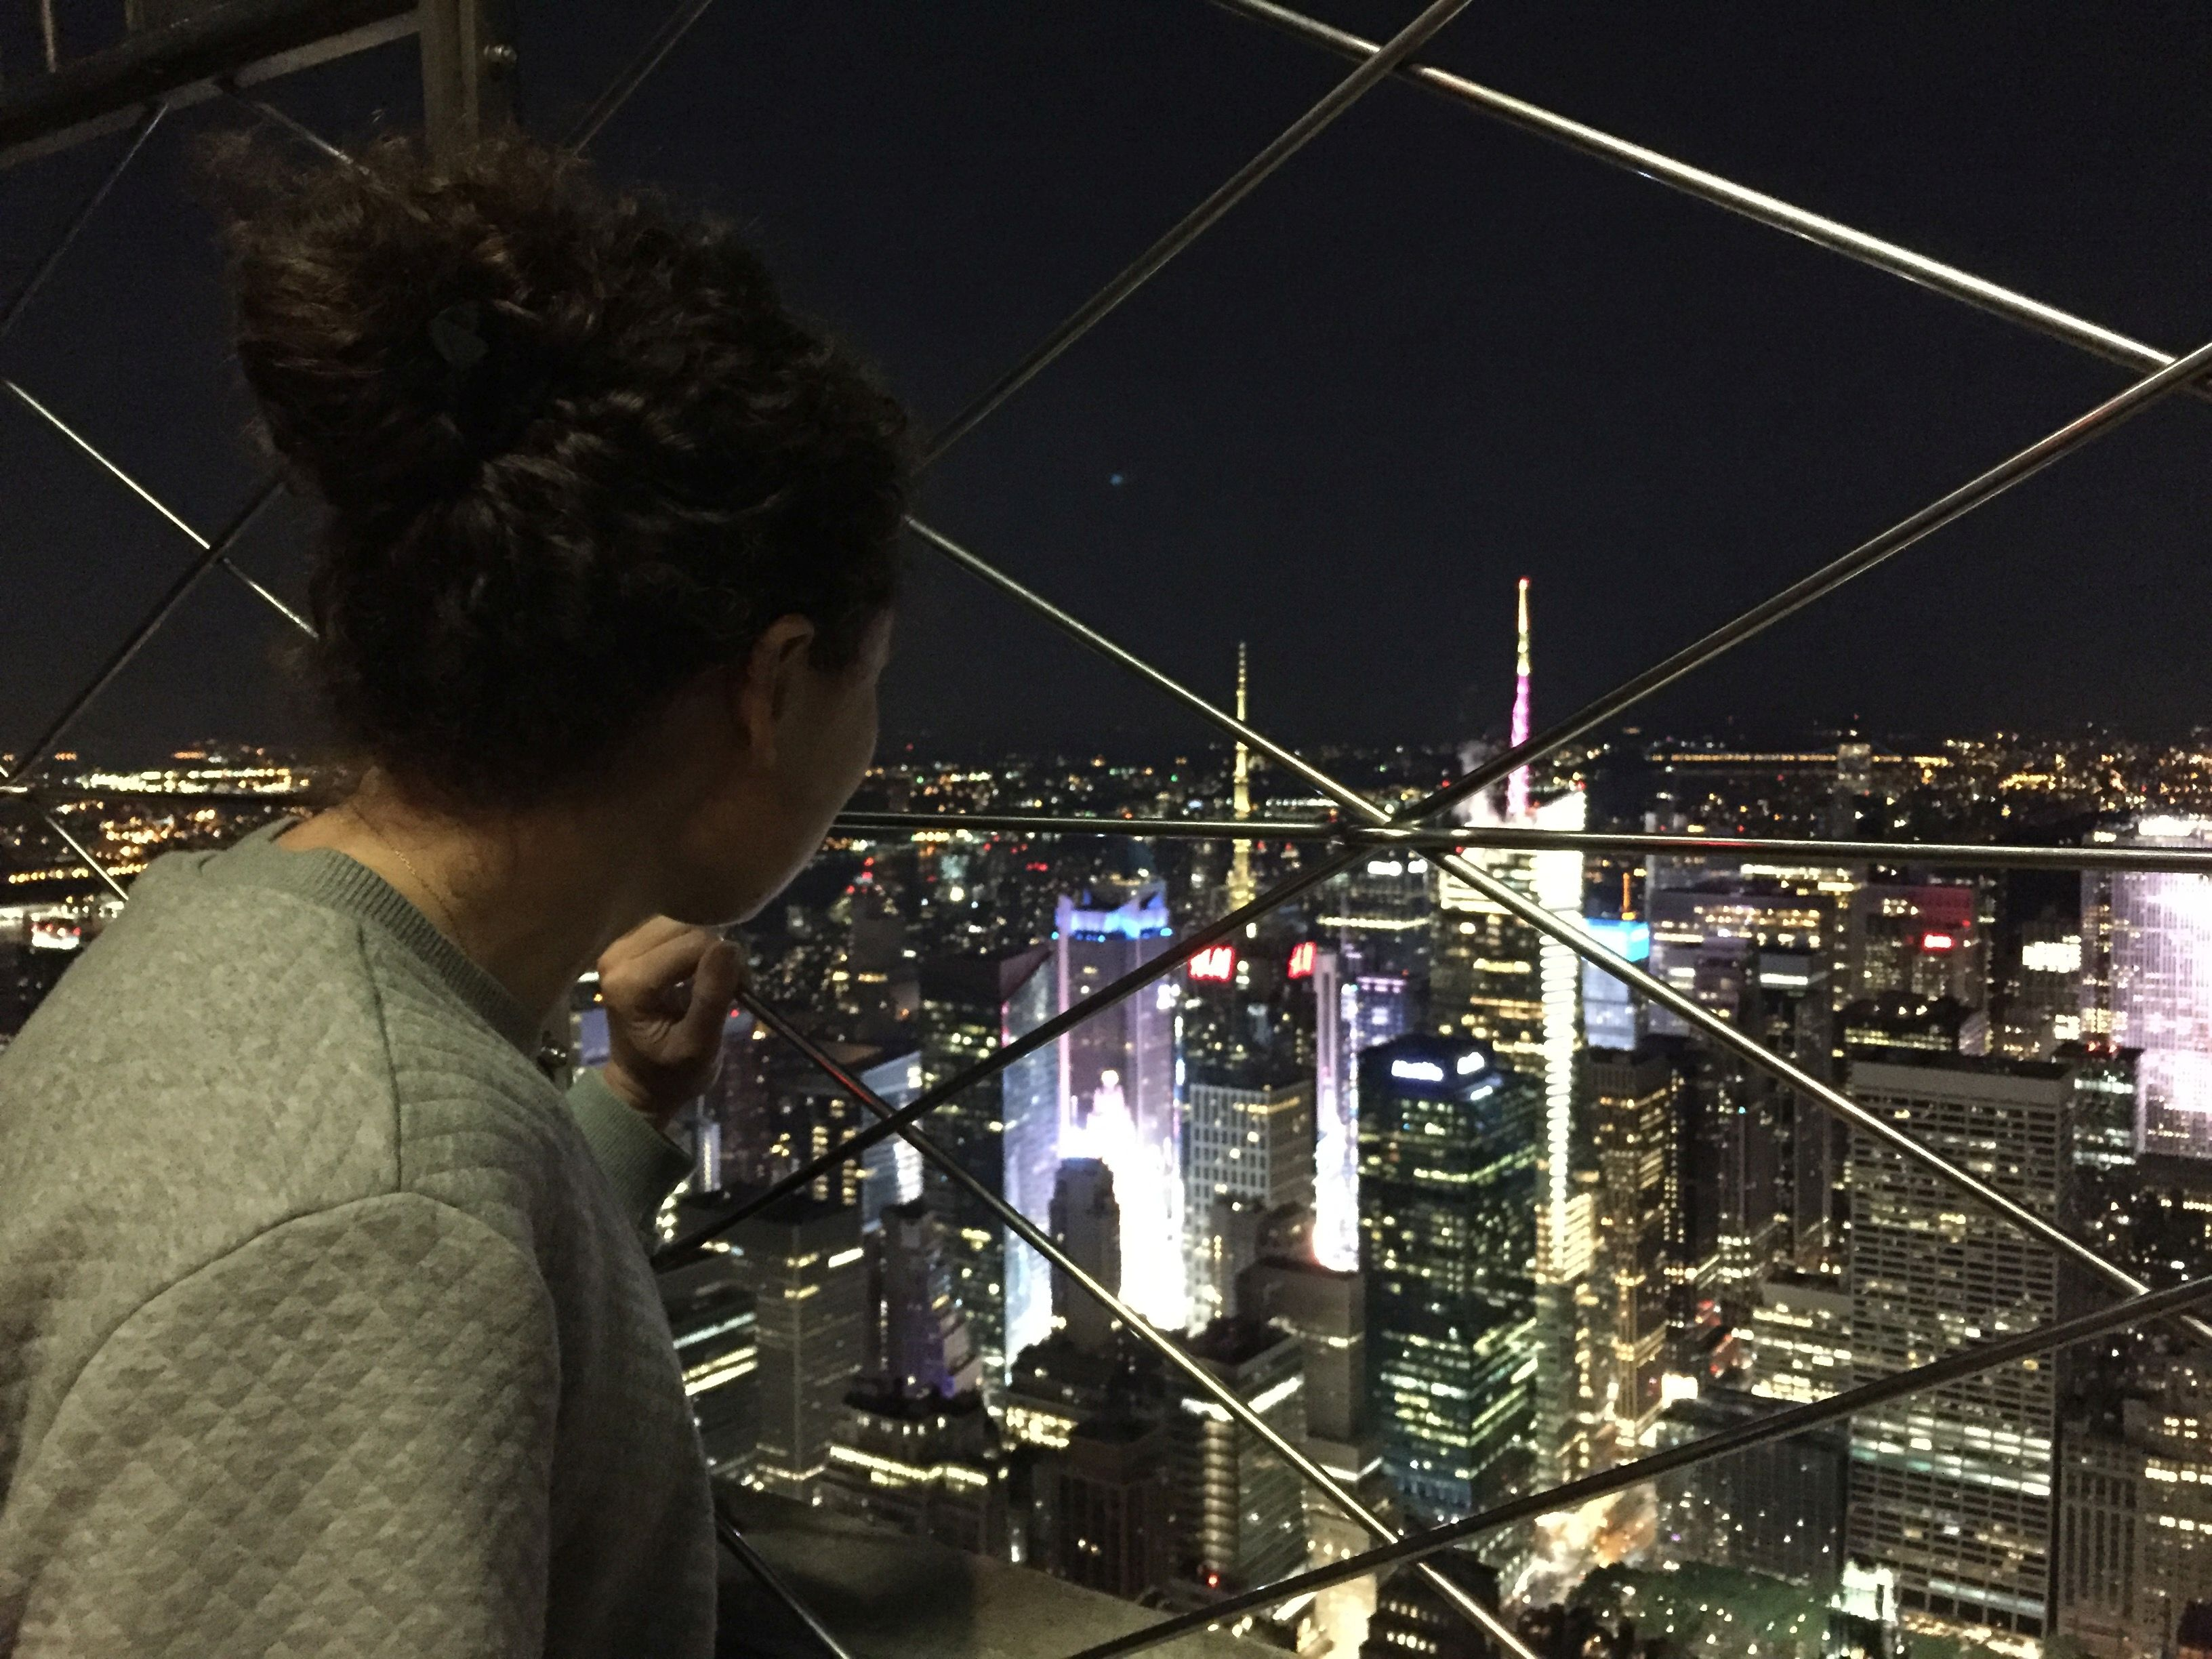 Admiring the view of New York at night from the Empire State Building (Sarah Marshall/PA)